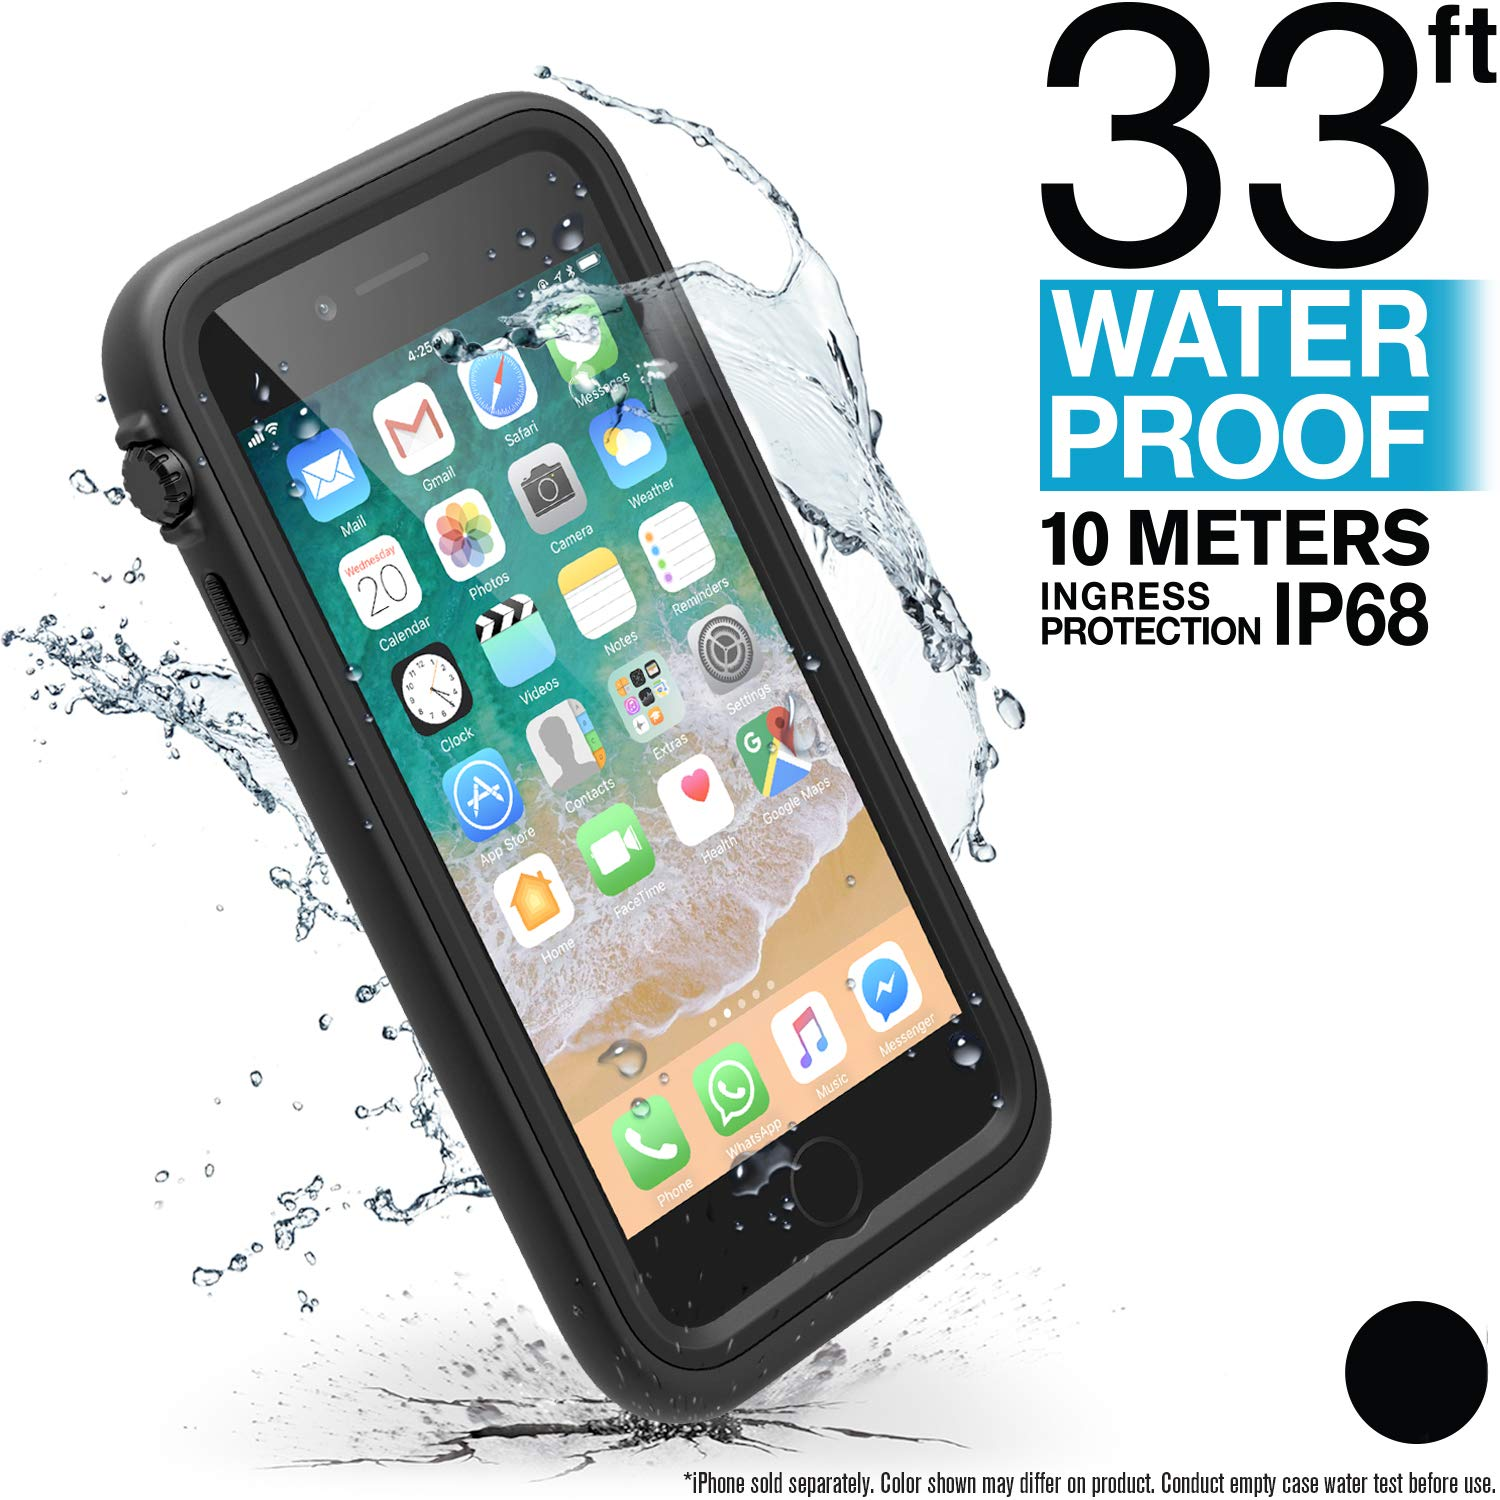 Catalyst iPhone 8 Waterproof Case (Compatible with iPhone 7), Shock Proof, Drop Proof, Slim, or Apple iPhone 8 (Works with iPhone 7) with Wrist Lanyard Included (Black) by Catalyst